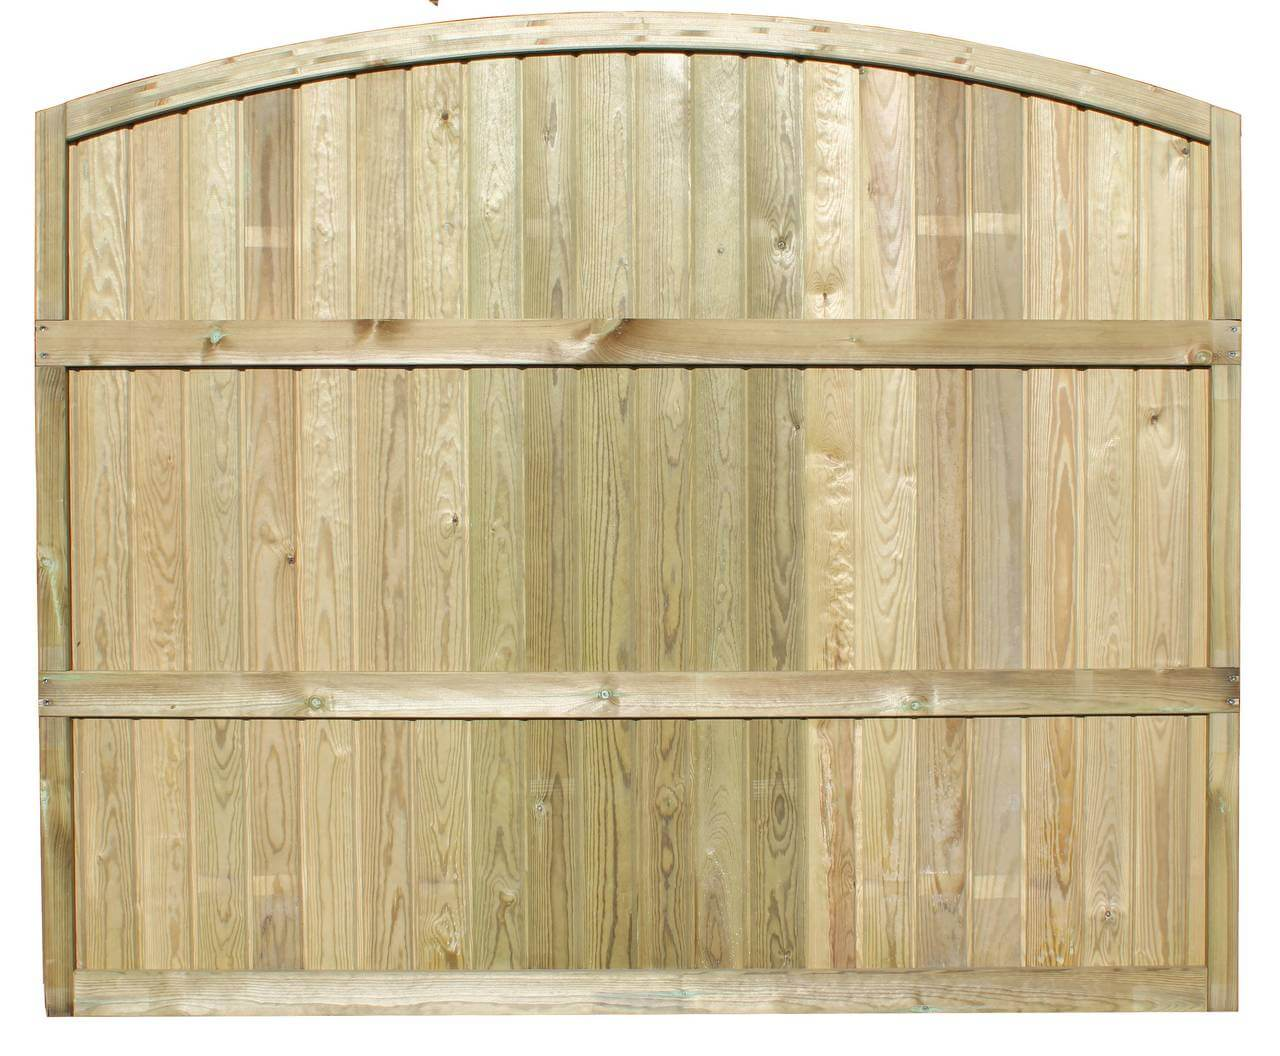 Rear View Tongue and Groove Convex Fence Panel